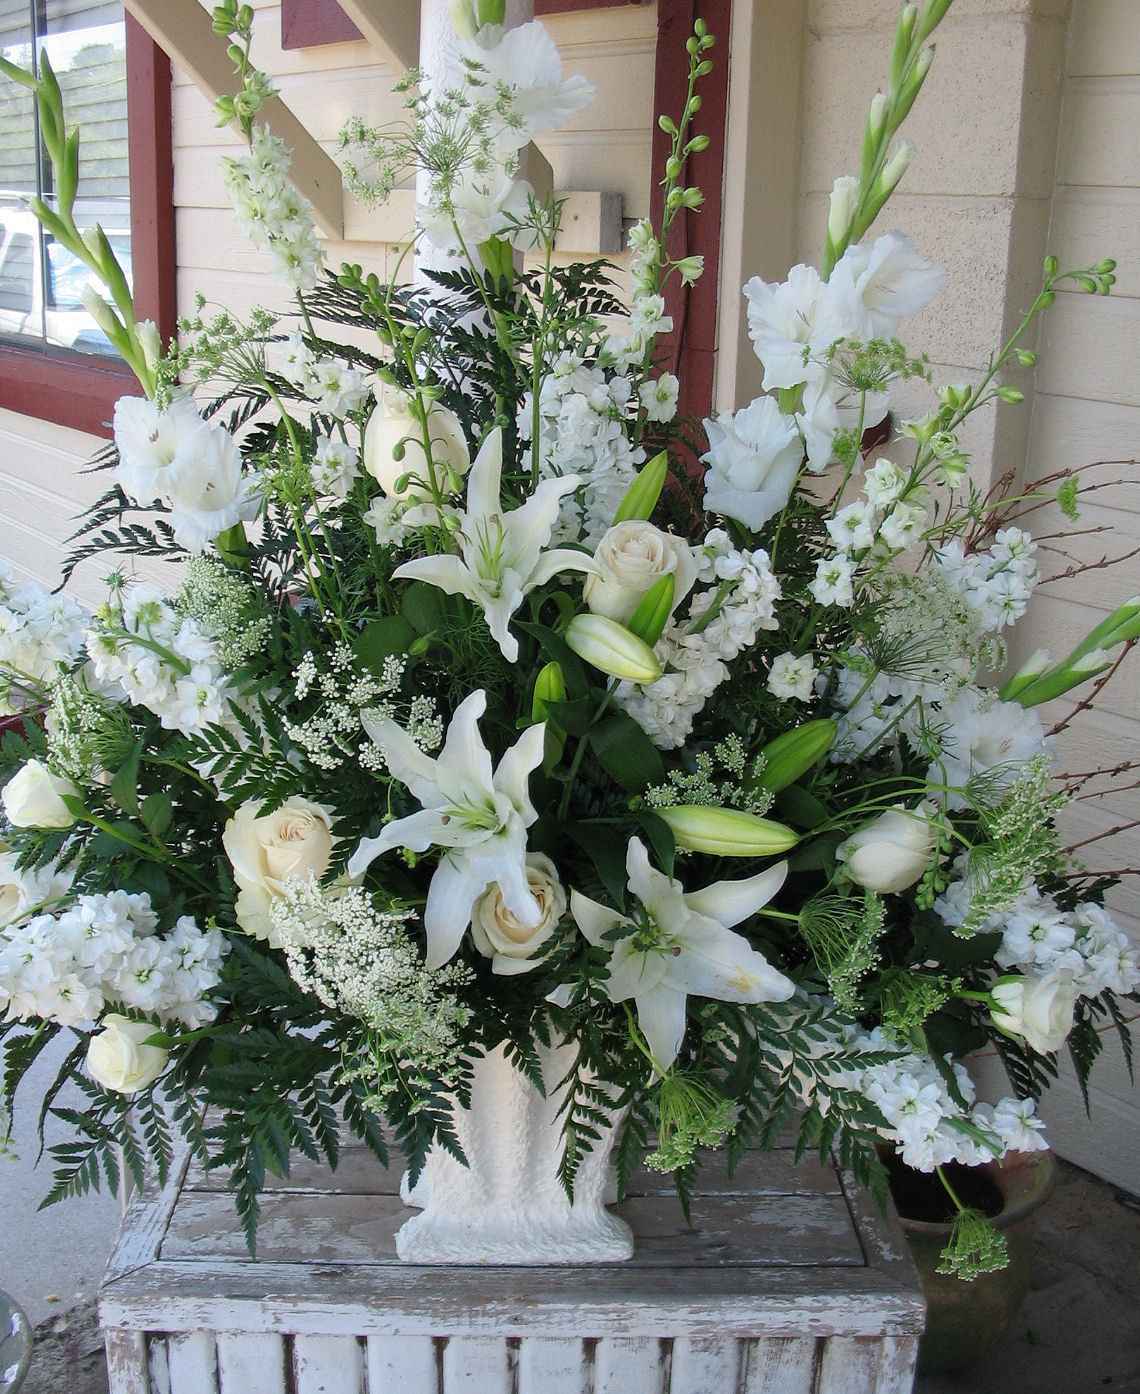 Ideas For Wedding Flower Arrangements: Wedding. Romance. Party. Happiness Moment. Ideas. Sharing